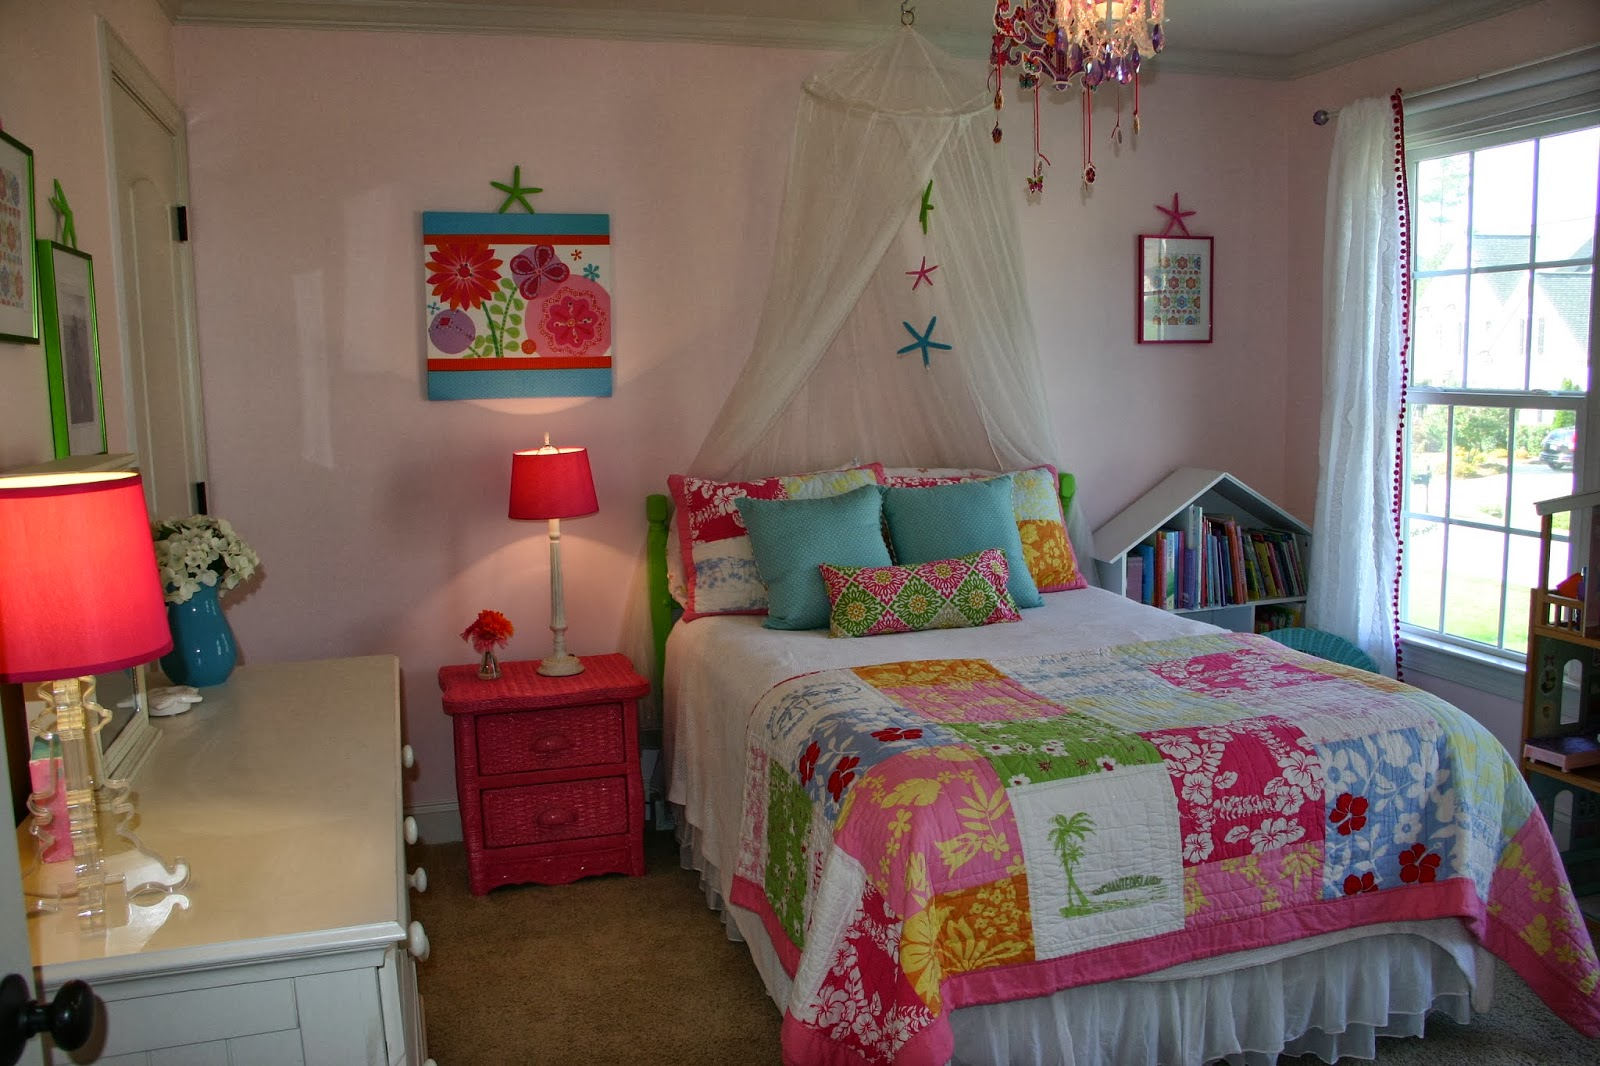 Cottage blue designs spiced up room for a sparkly girl for Older girls bedroom designs